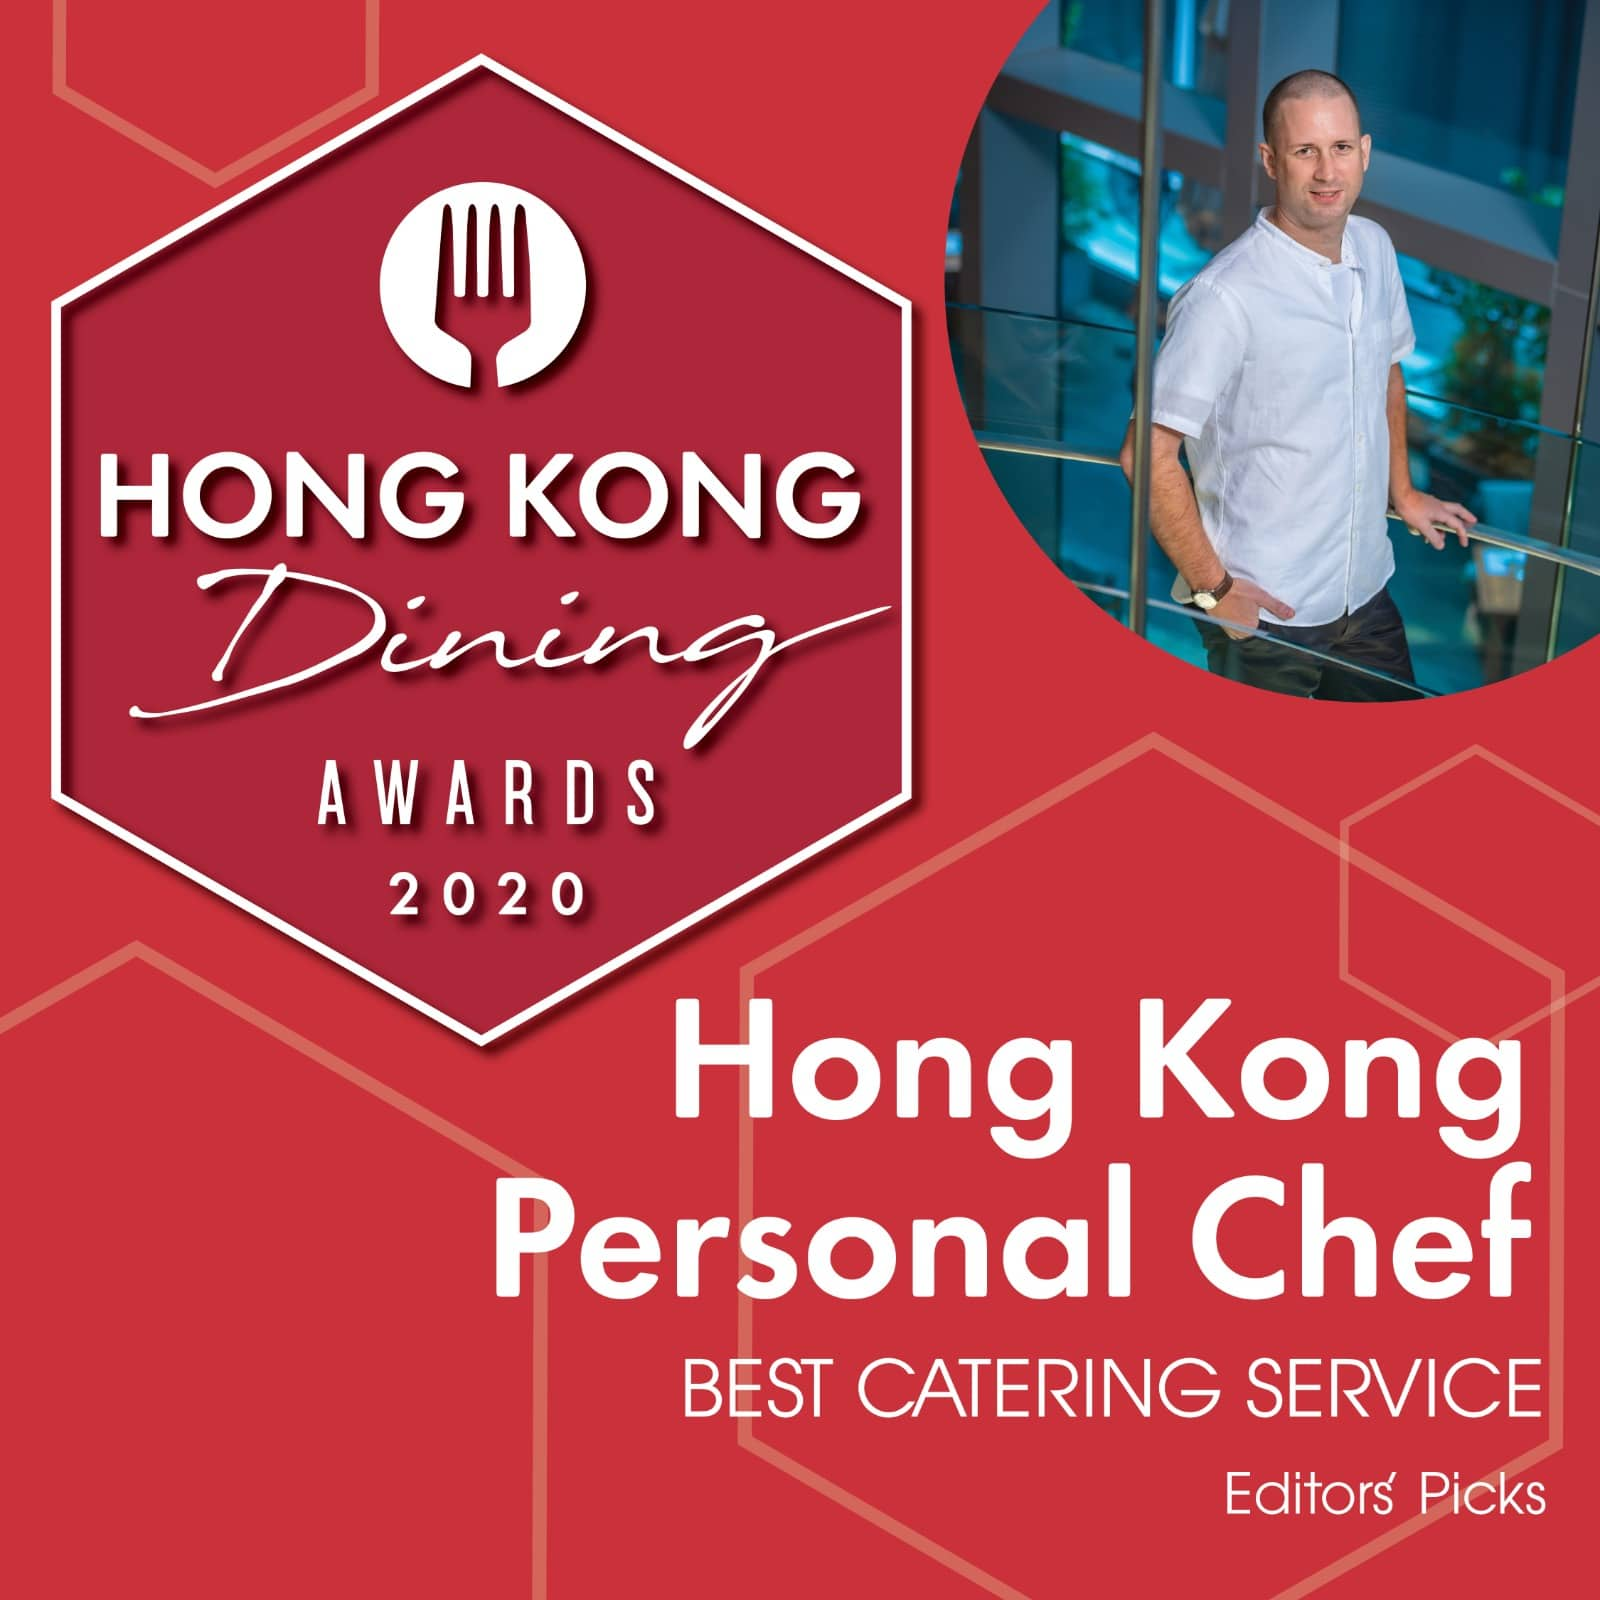 best private chef catering company award hong kong personal chef on red background from hong kong living dining awards